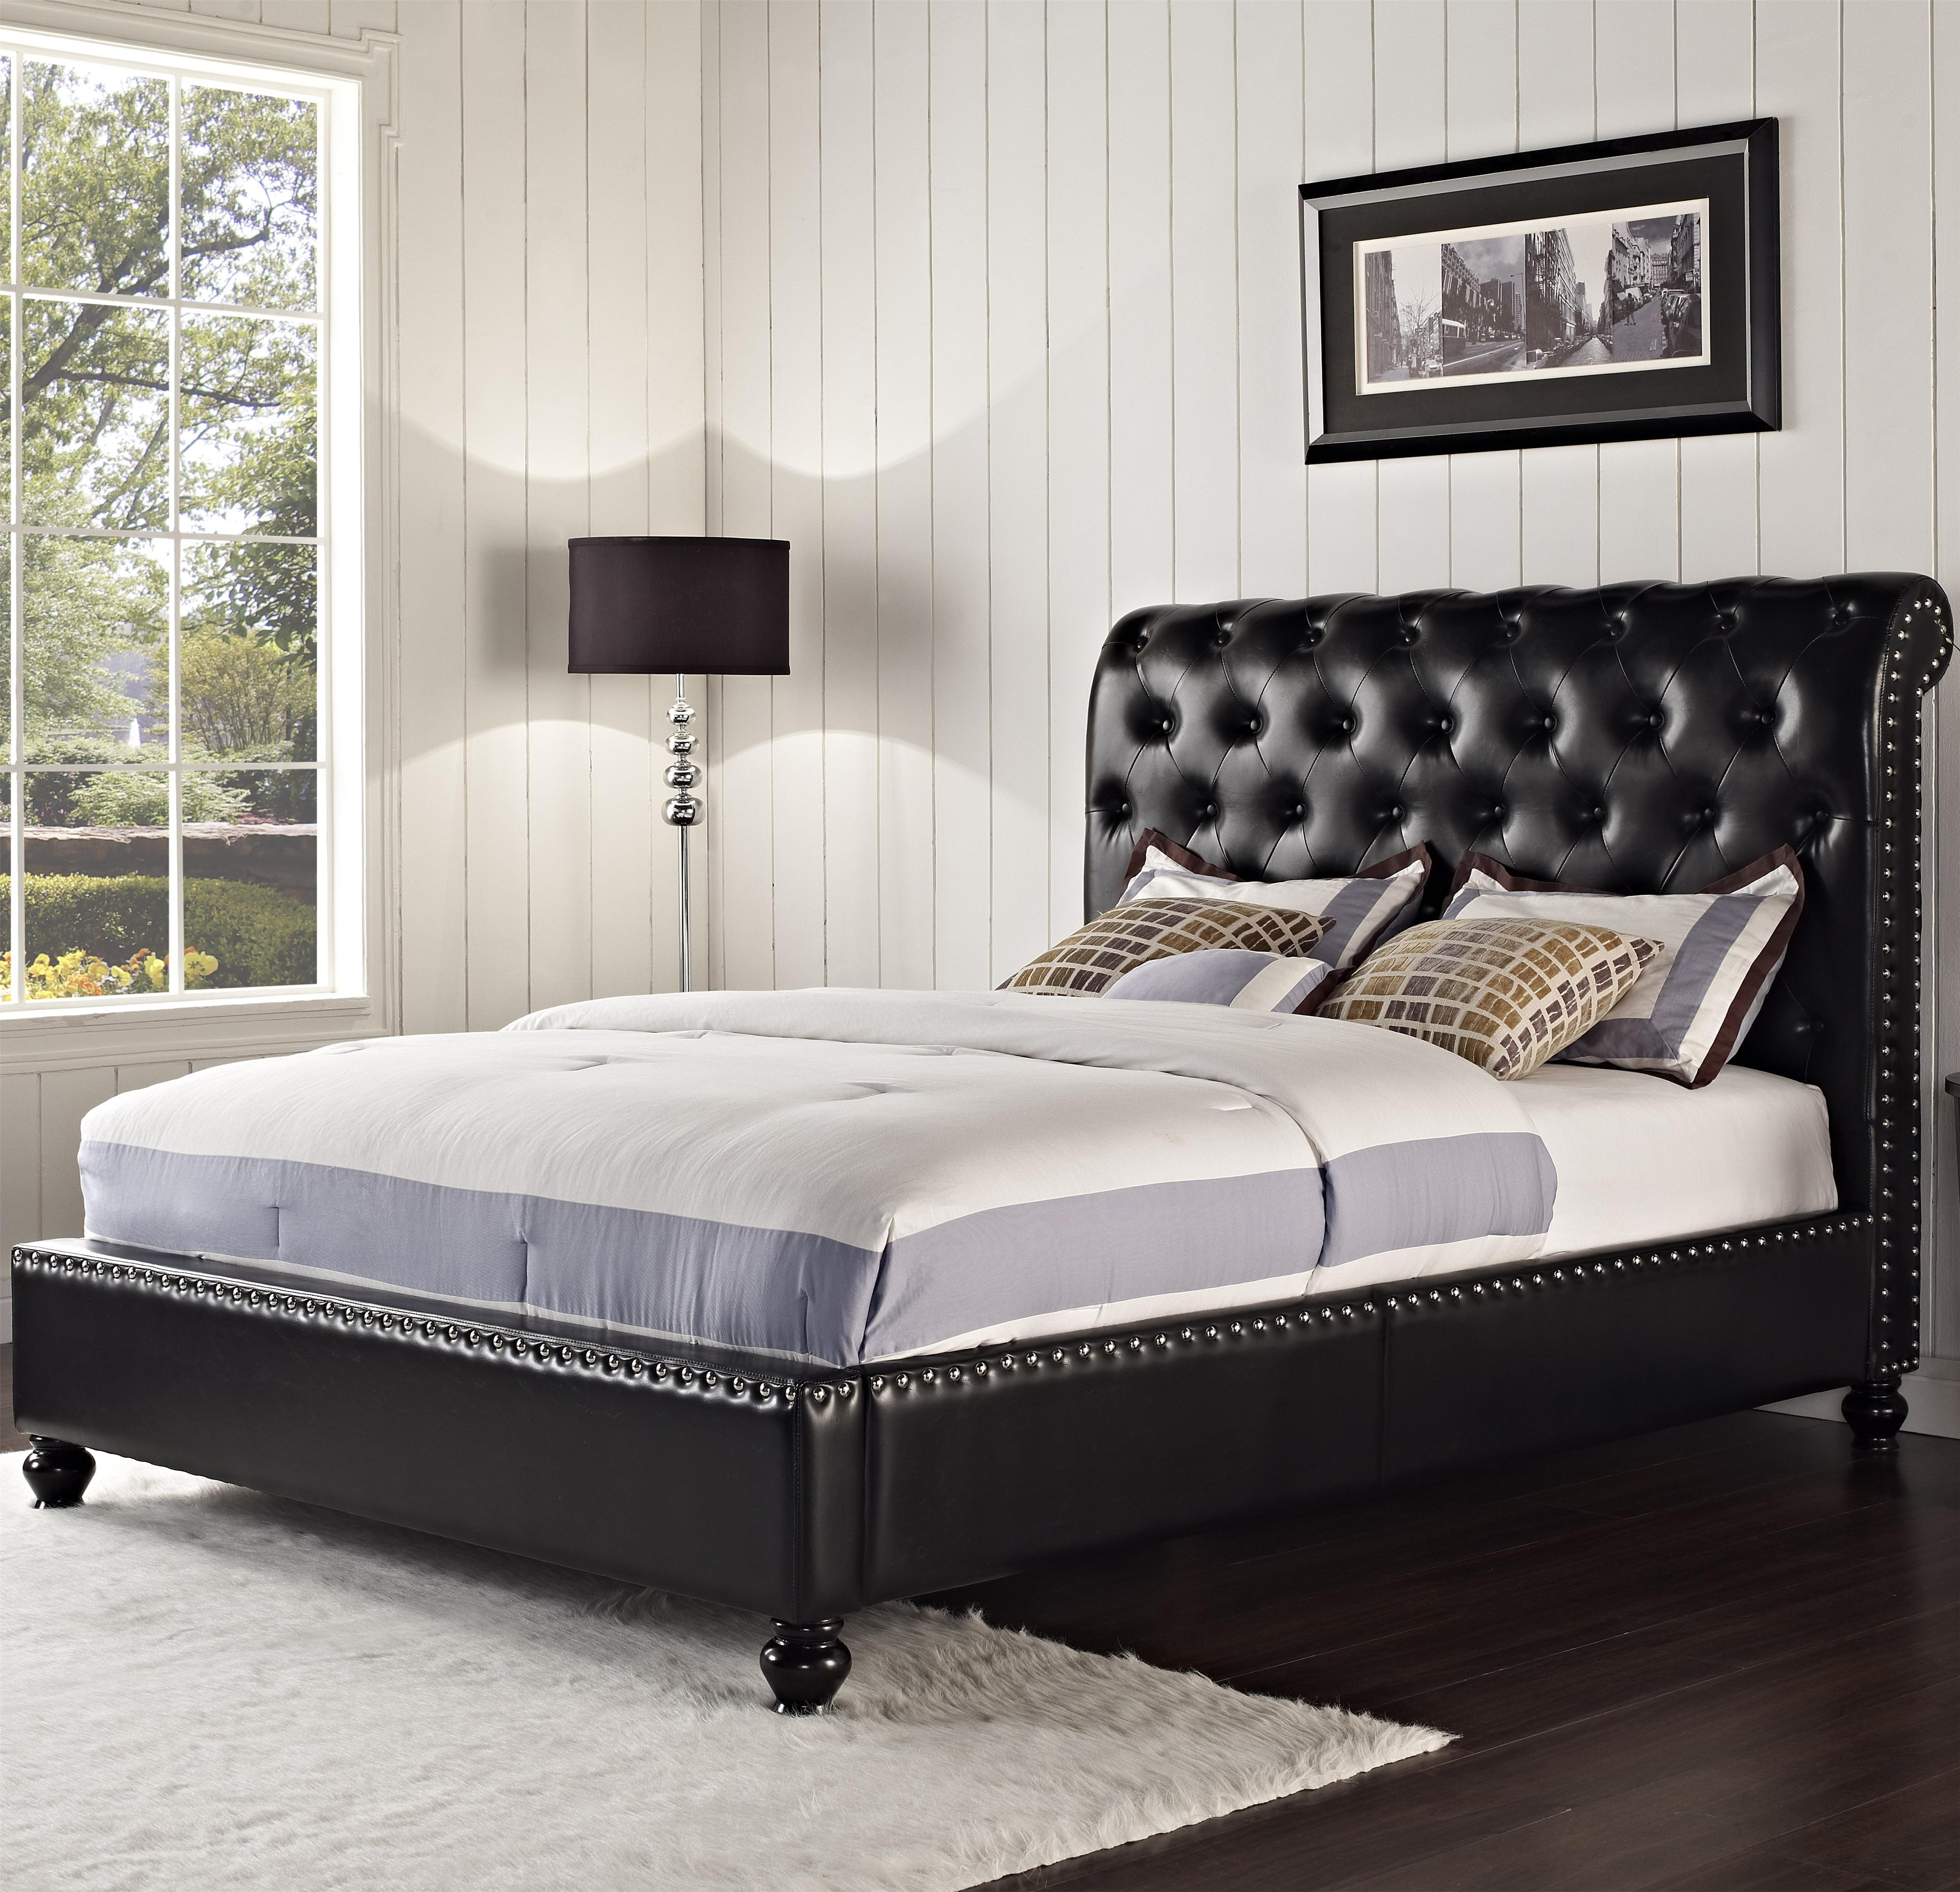 Upholstered King Bed With Rolled And Tufted Headboard By Standard Furniture Wolf And Gardiner